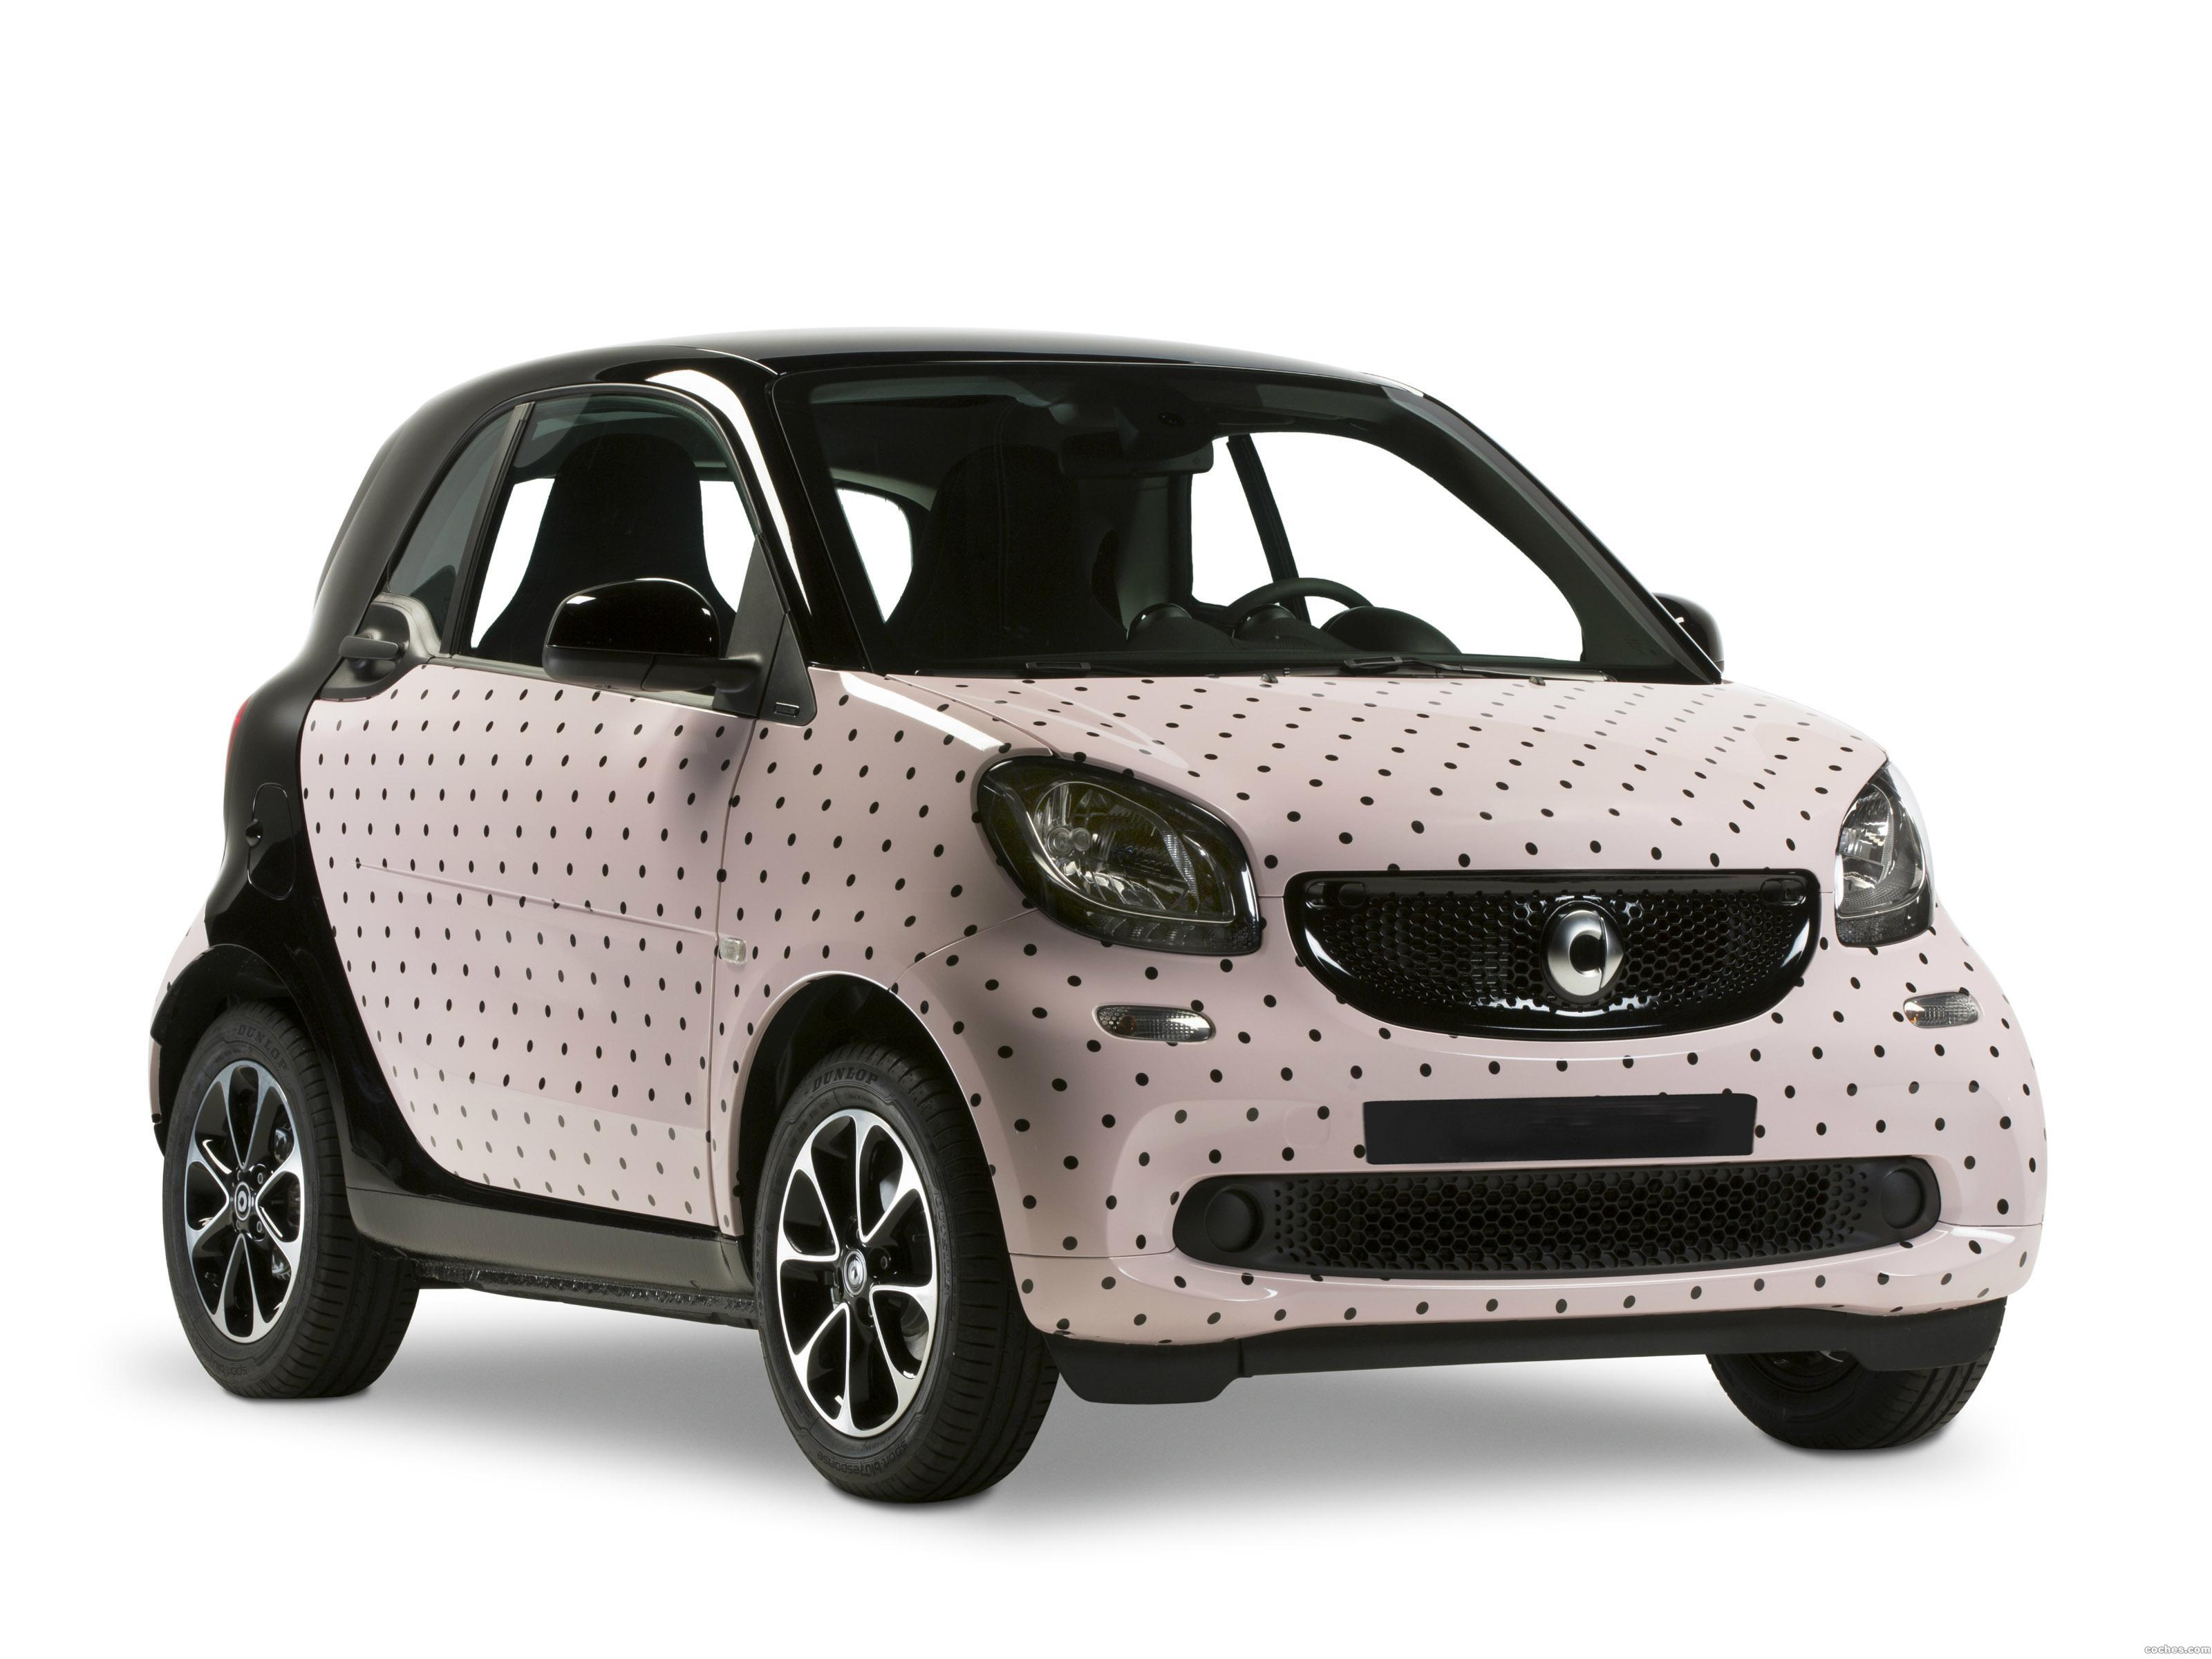 smart_fortwo-pois-by-garage-italia-customs-c453-2016_r7.jpg